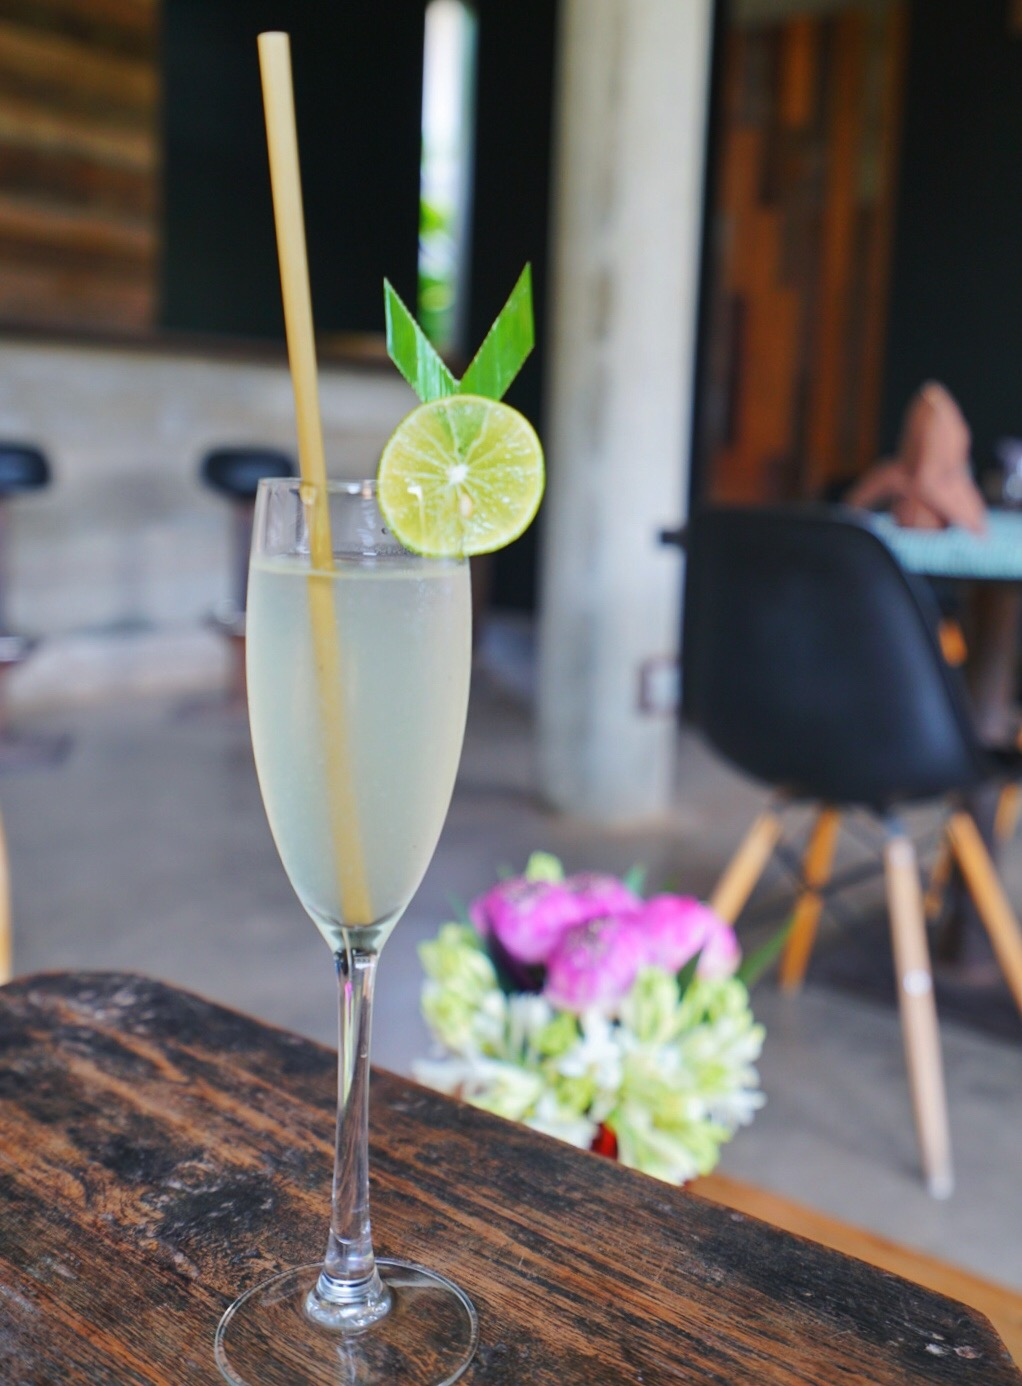 welcome drink sala lodge siem reap cambodia champagne glass bamboo straw.JPG